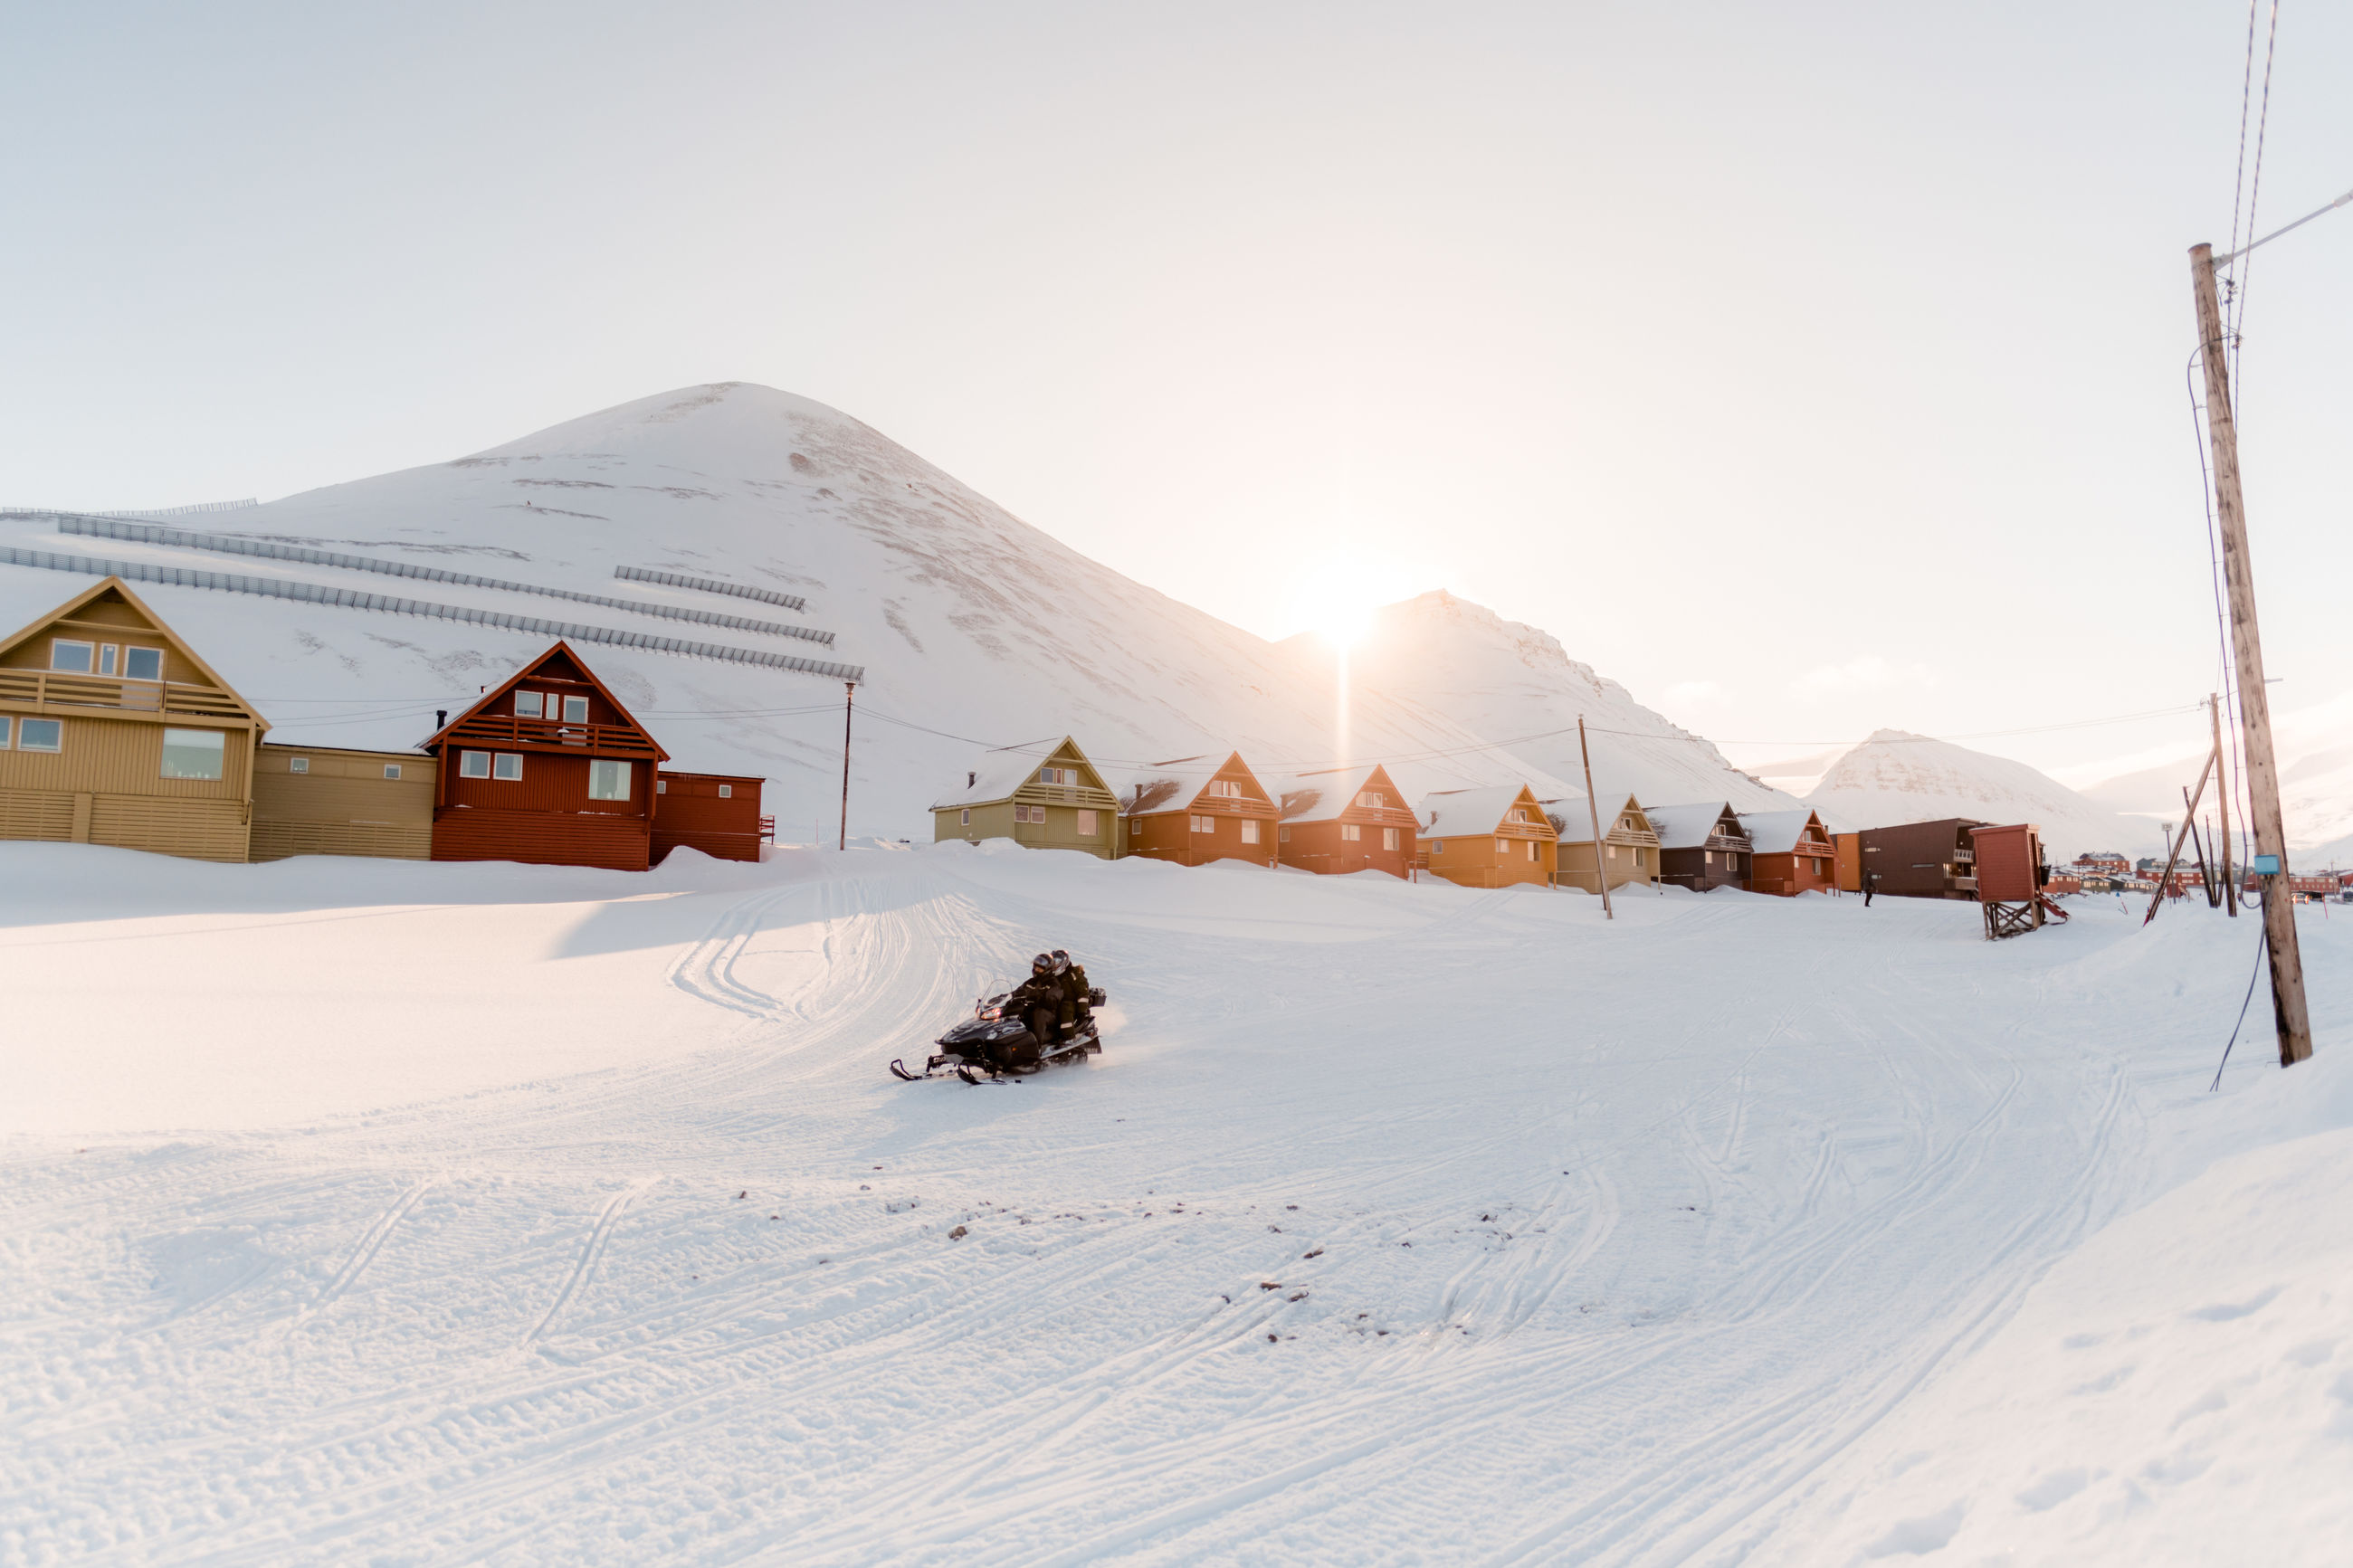 winter, snow, cold temperature, mountain, sky, built structure, architecture, covering, nature, scenics - nature, environment, building exterior, white color, beauty in nature, landscape, building, land, house, sunlight, snowcapped mountain, outdoors